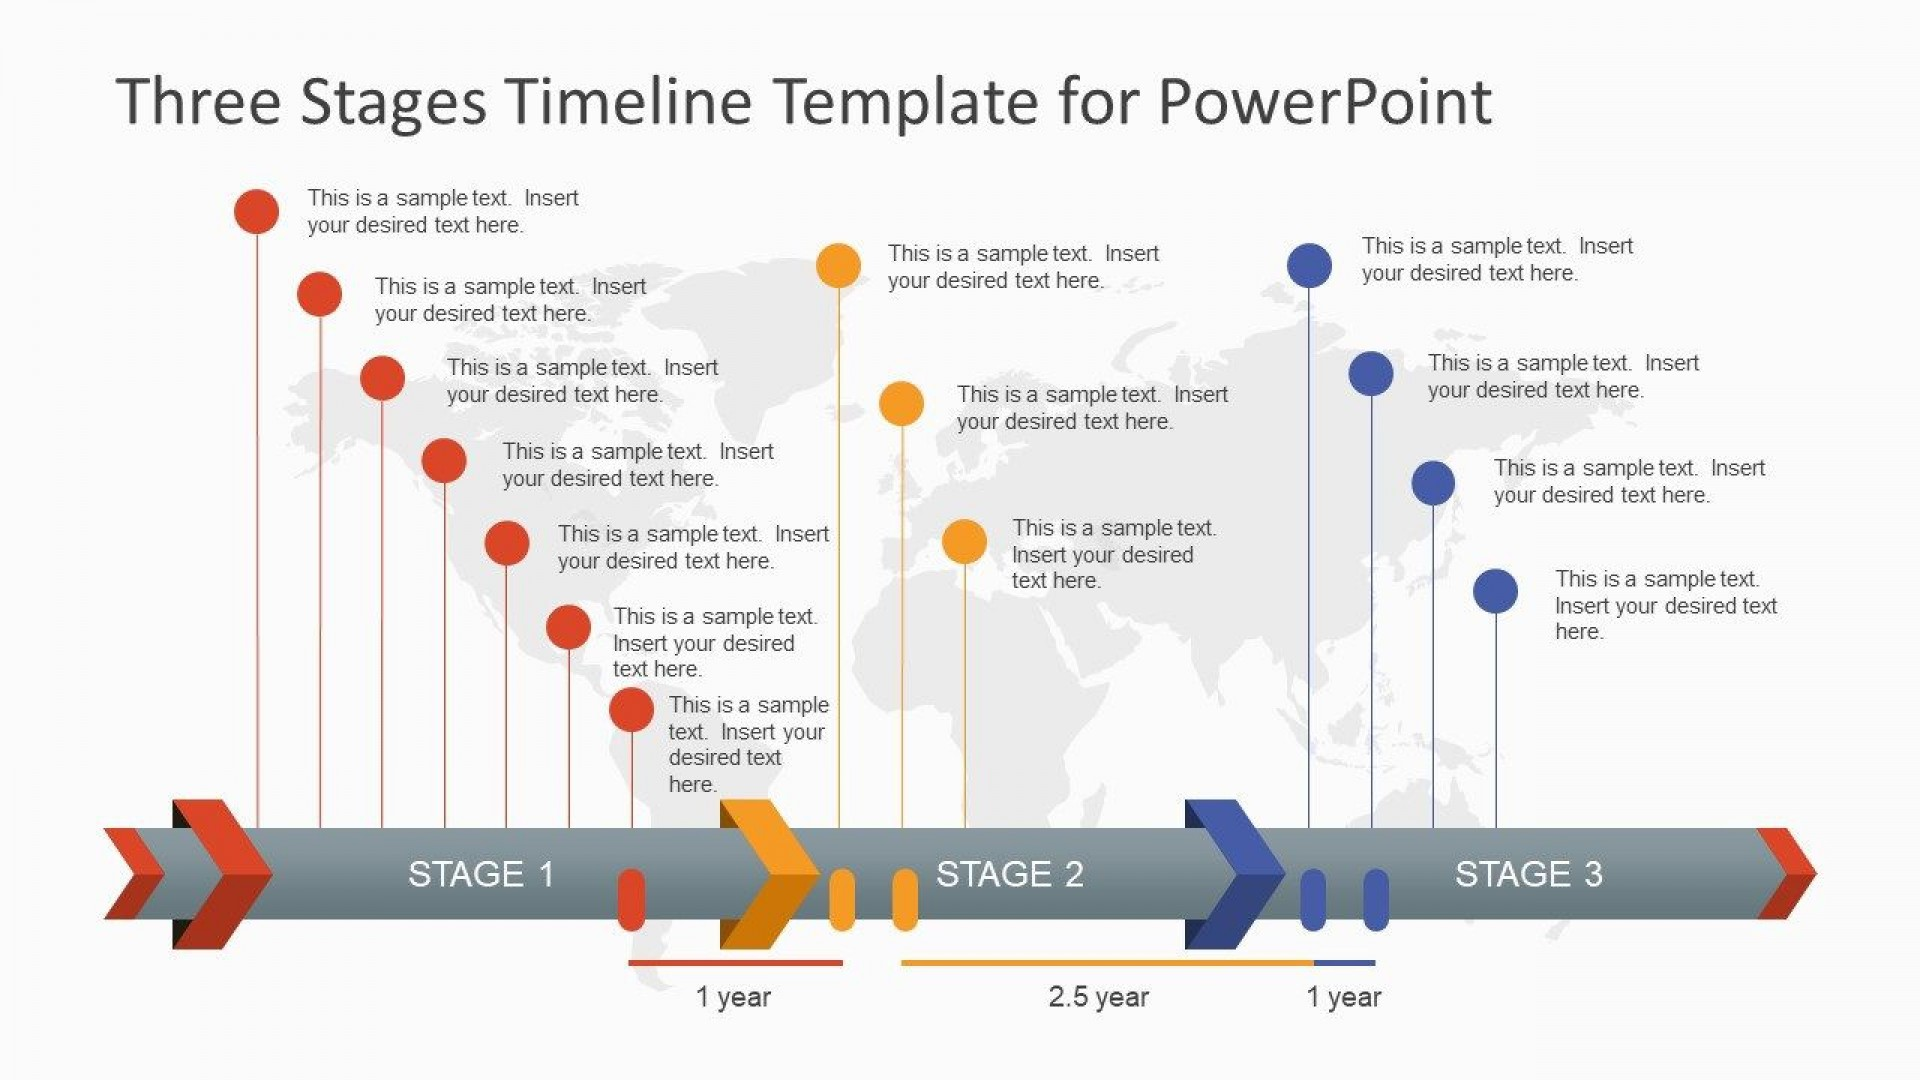 000 Phenomenal Sample Timeline Template For Powerpoint Inspiration 1920